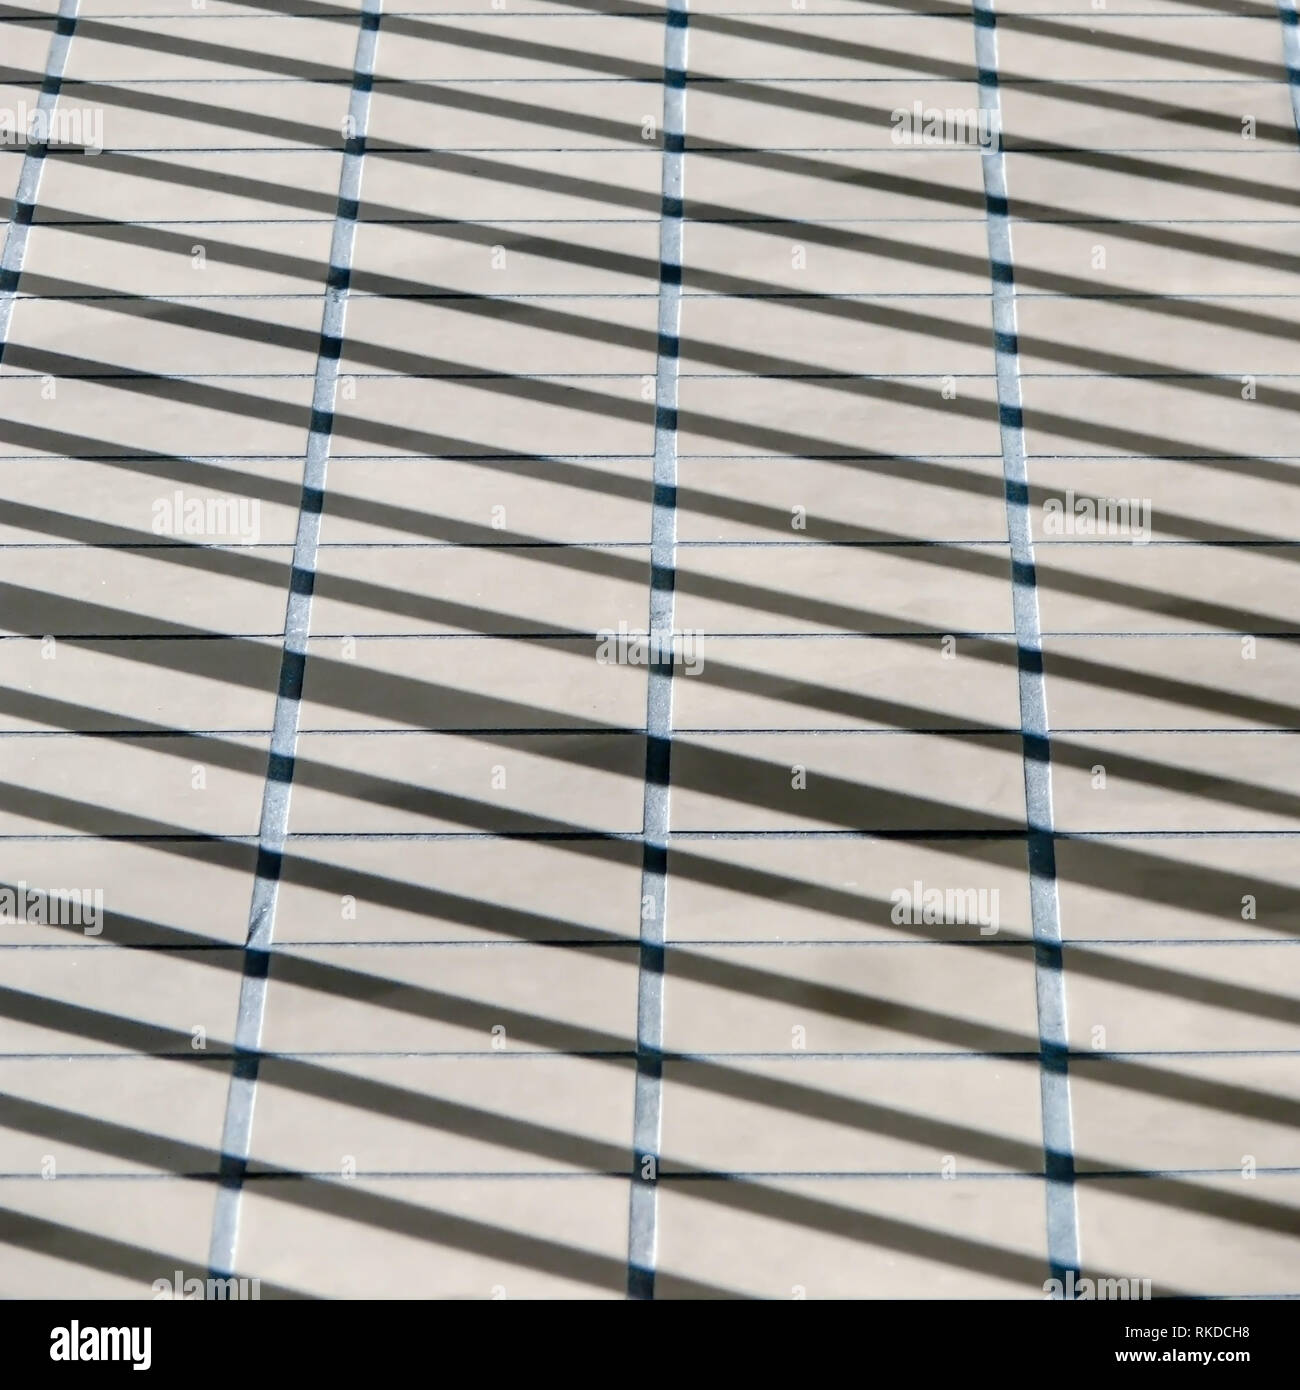 Shadow pattern on a sidewalk abstract background. - Stock Image